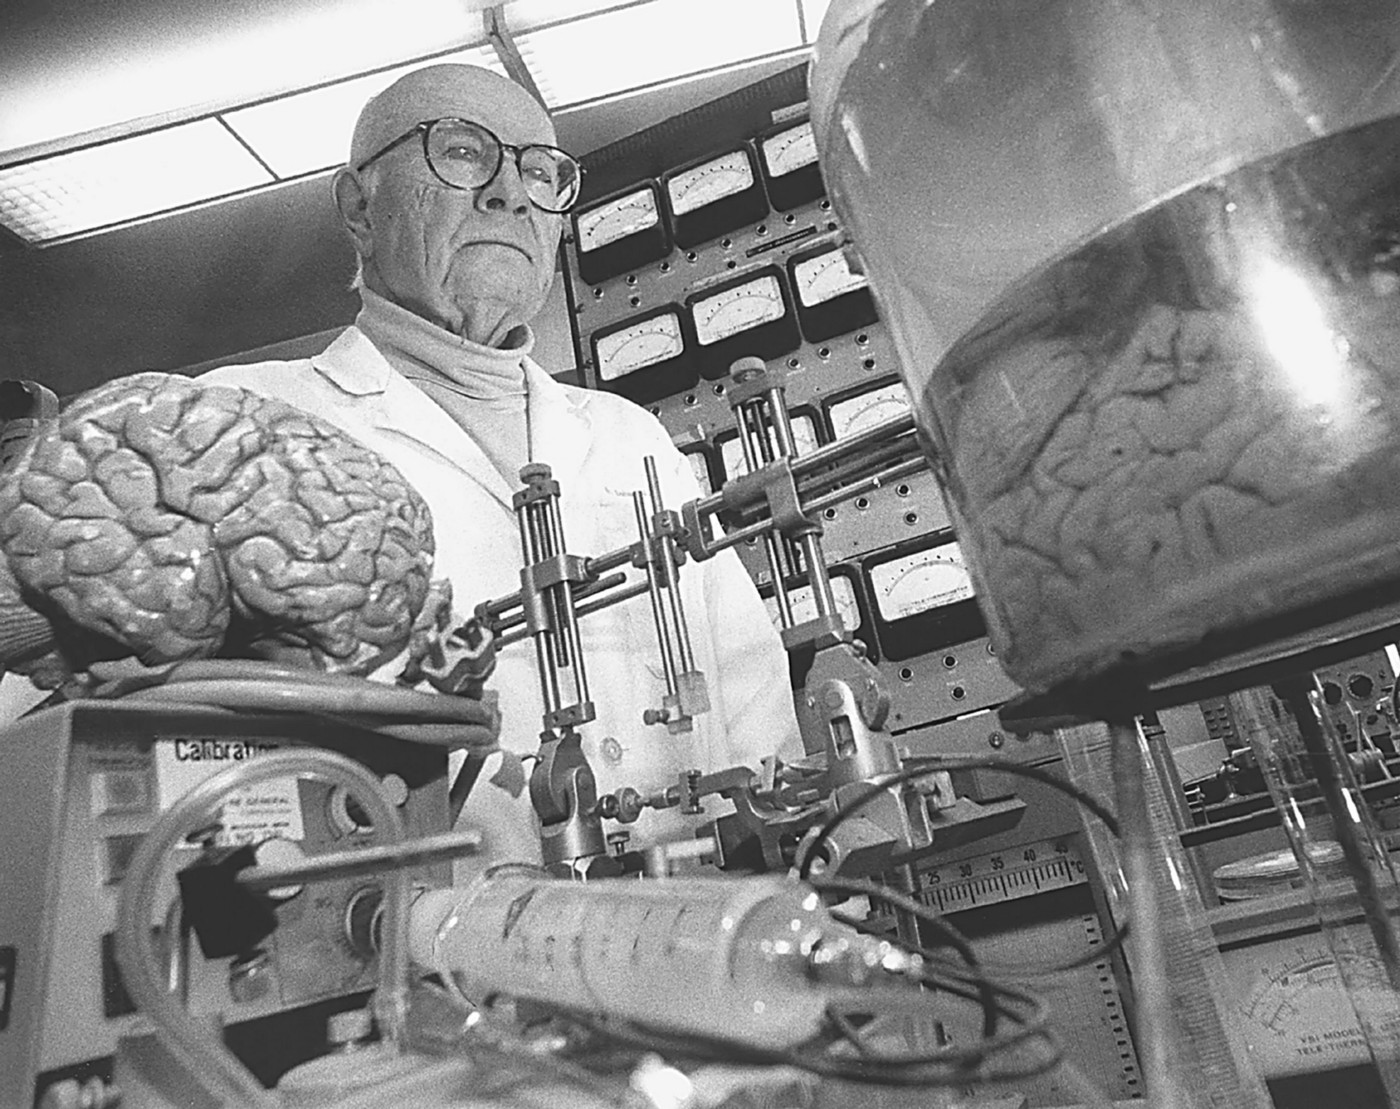 Dr. Robert White standing behind medical equipment and a brain in a jar